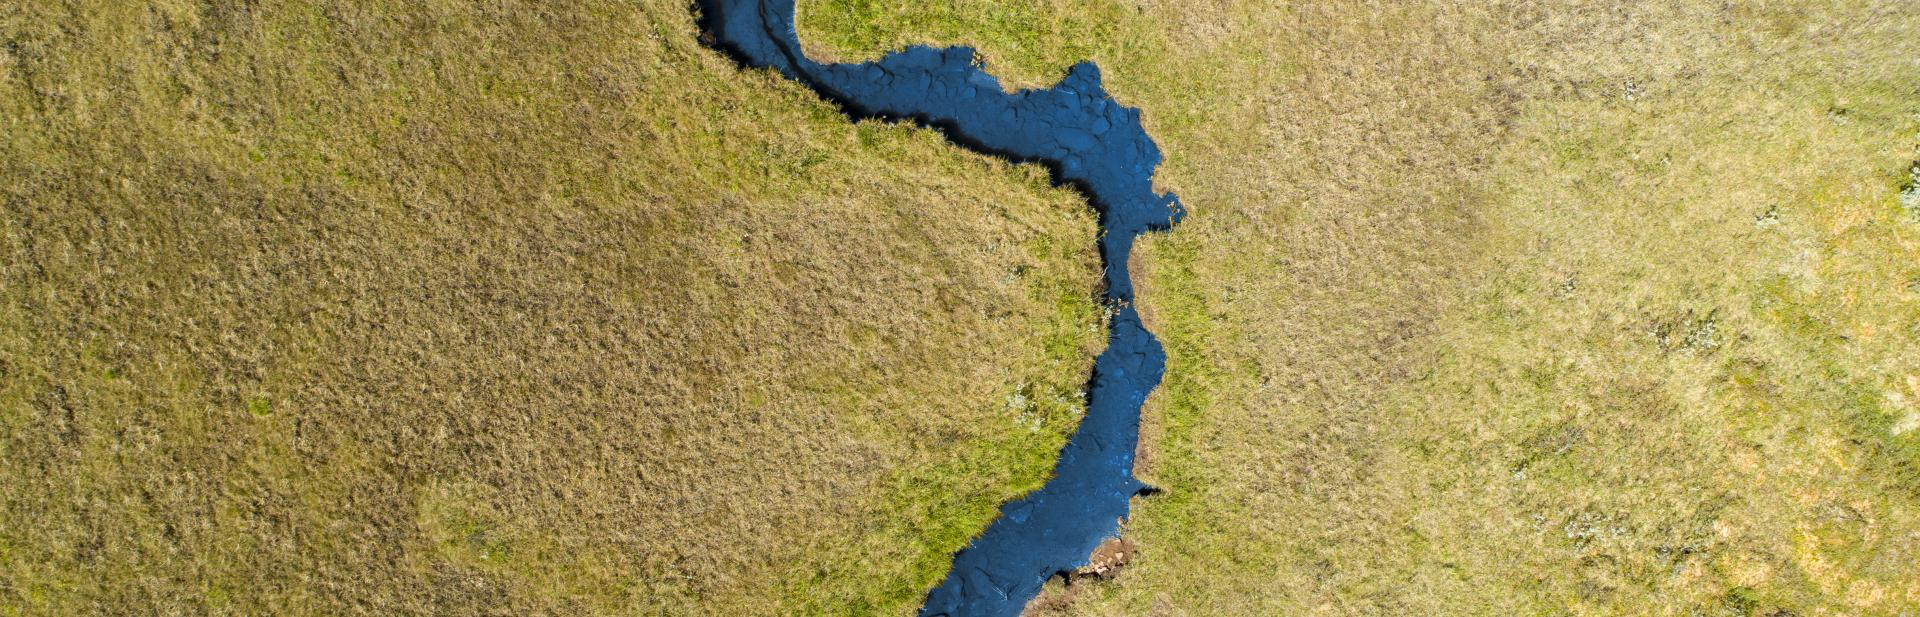 Aerial view of river winding through grasslands.